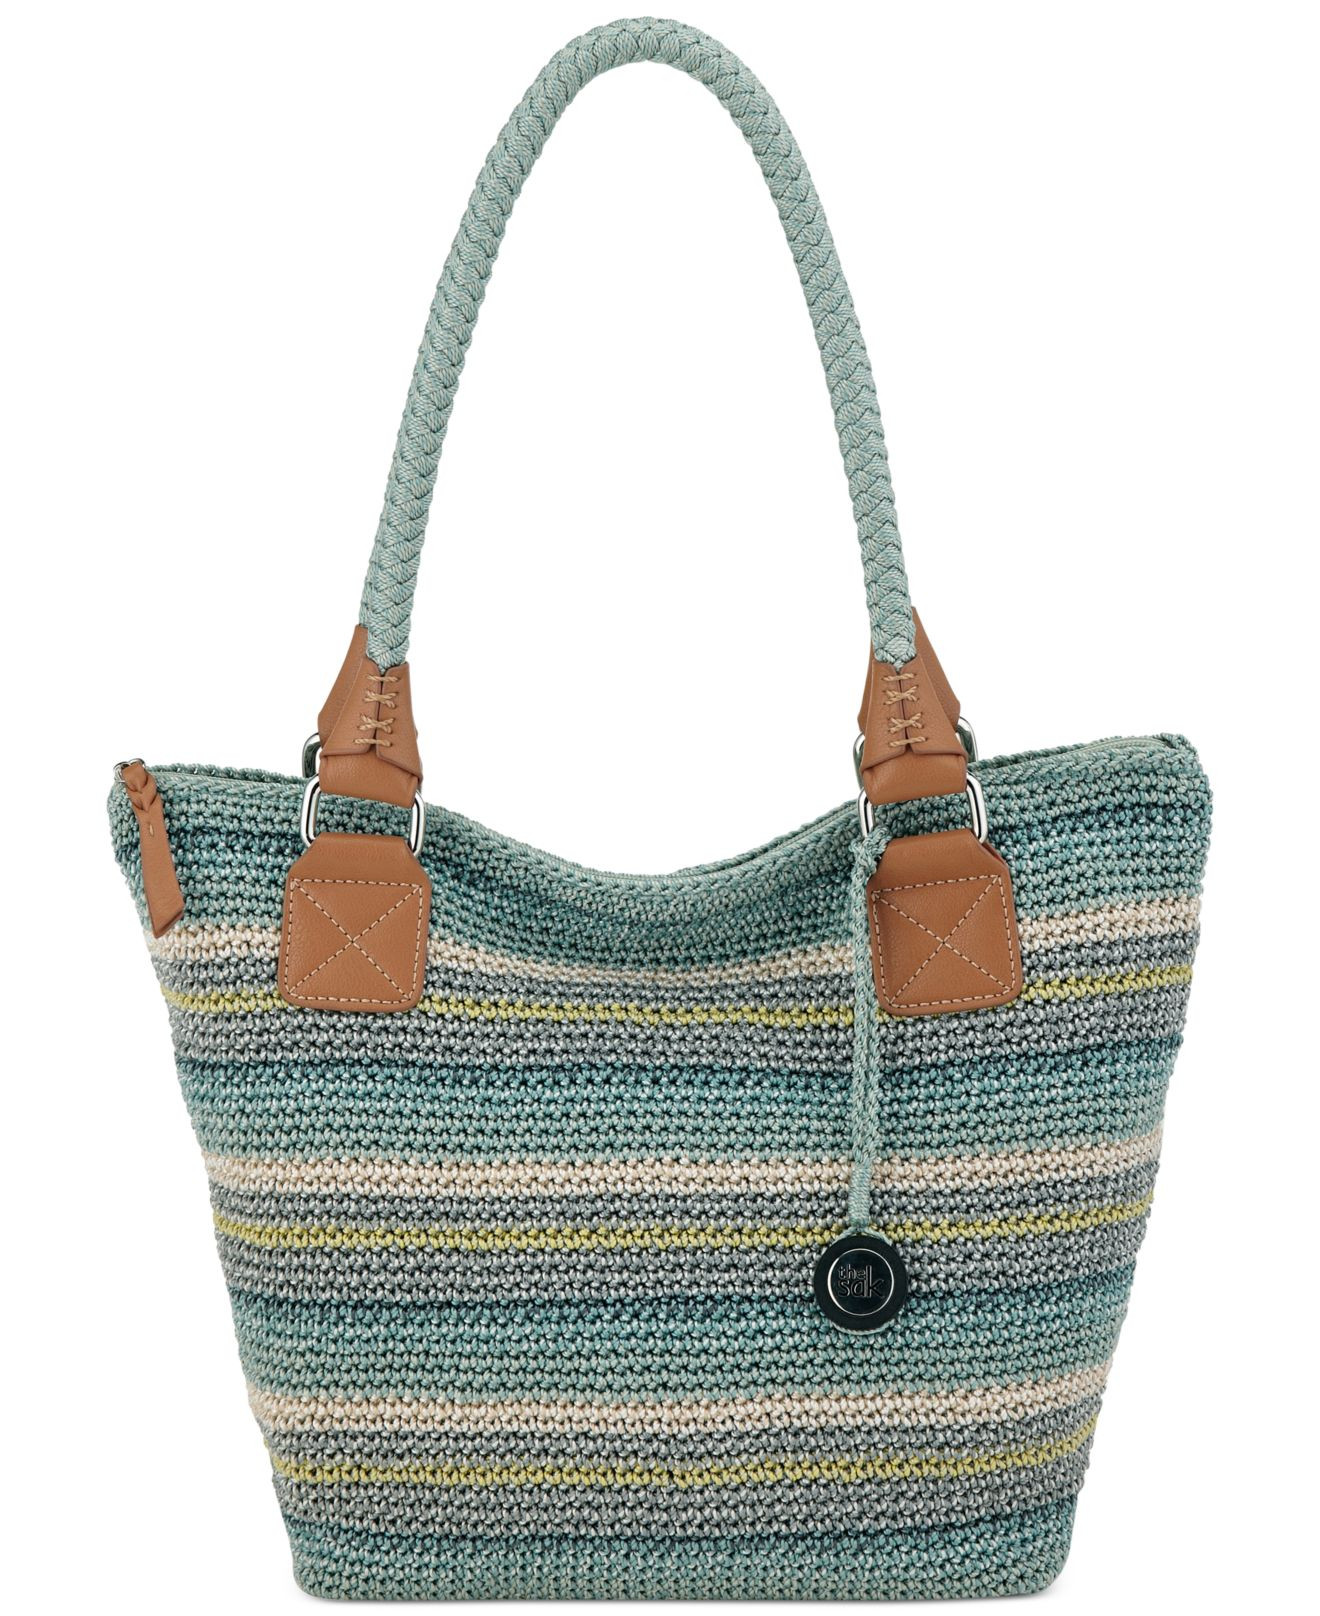 The Sak Crochet Lovely the Sak Cambria Crochet tote In Blue Of The Sak Crochet Awesome the Sak Black Crochet Cross Body Shoulder Bag Purse Handbag